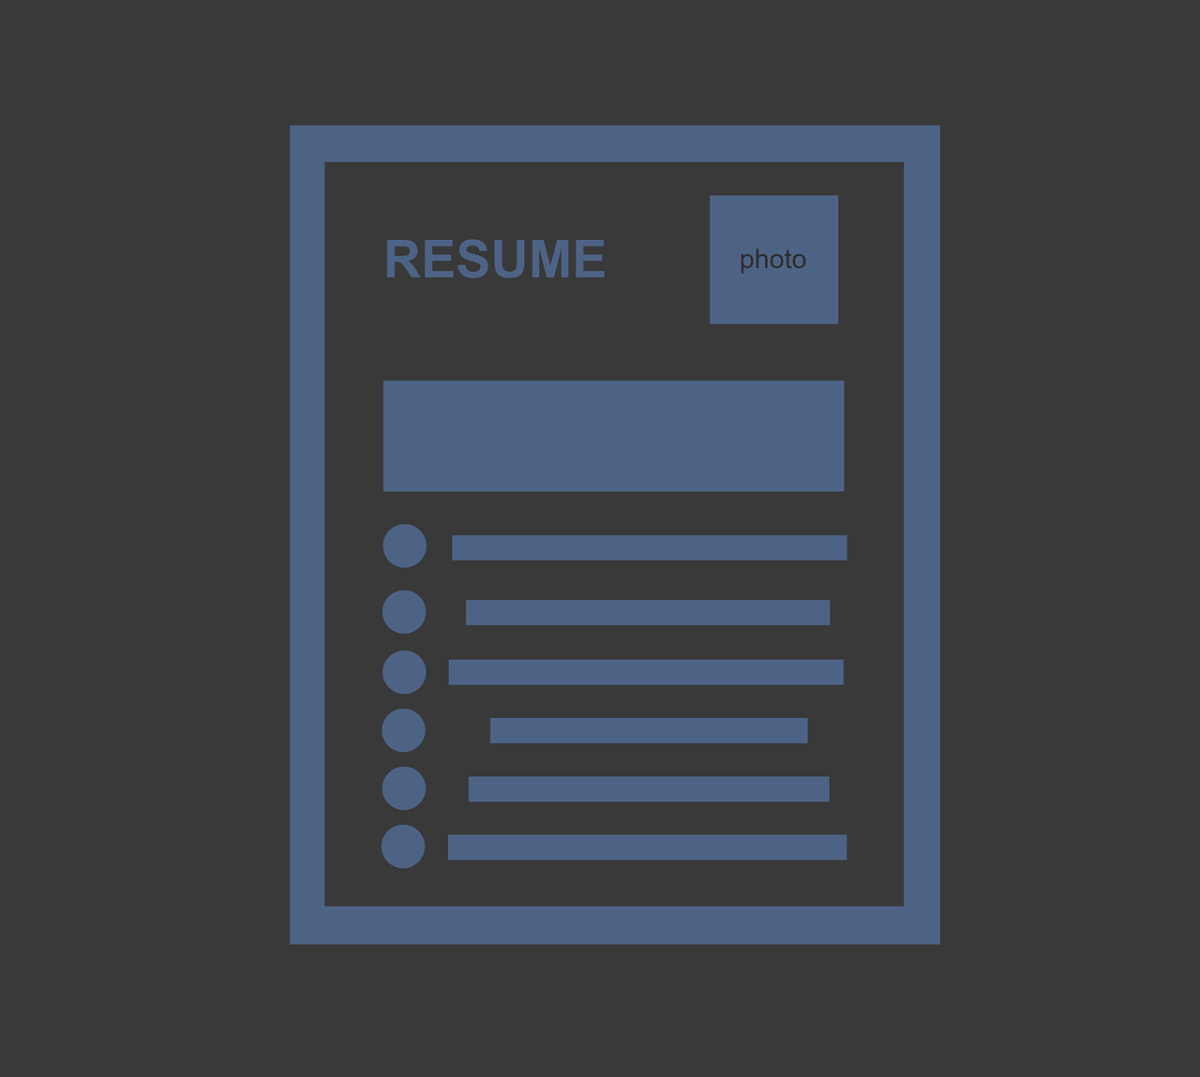 key skills in resume means sample customer service resume key skills in resume means customer service resume skills objectives 15 stem resume writing workshop